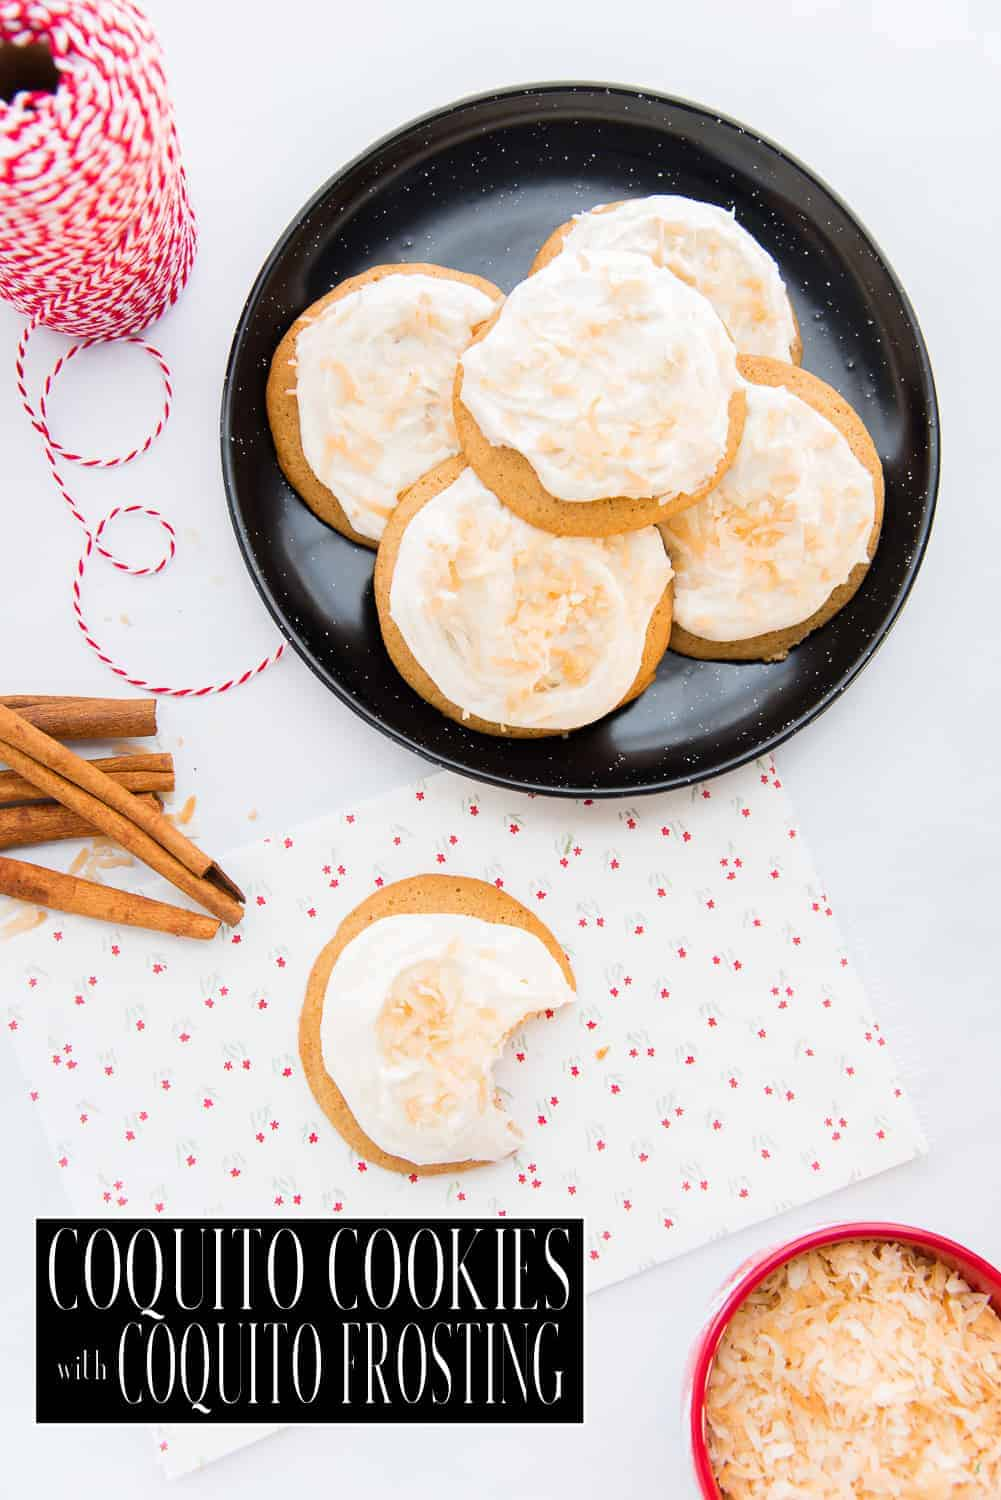 Coquito cookies with  coquito buttercream frosting are a fun way to enjoy the drink of the season. Made with coquito in the batter,  it is a festive dessert to celebrate the holidays. #coquito #baking #coquitocookies #postres #galletasdecoco #galletas #buttercream #holidaybaking #holidayrecipes #holidaybakingrecipes #holidaycookies #Christmas #Thanksgiving #NewYears #LosTresReyes #cookiebaking #cookiedough #coconutrum #coconutcookies #softcookies #cookierecipe #bakingwithcoquito via @ediblesense